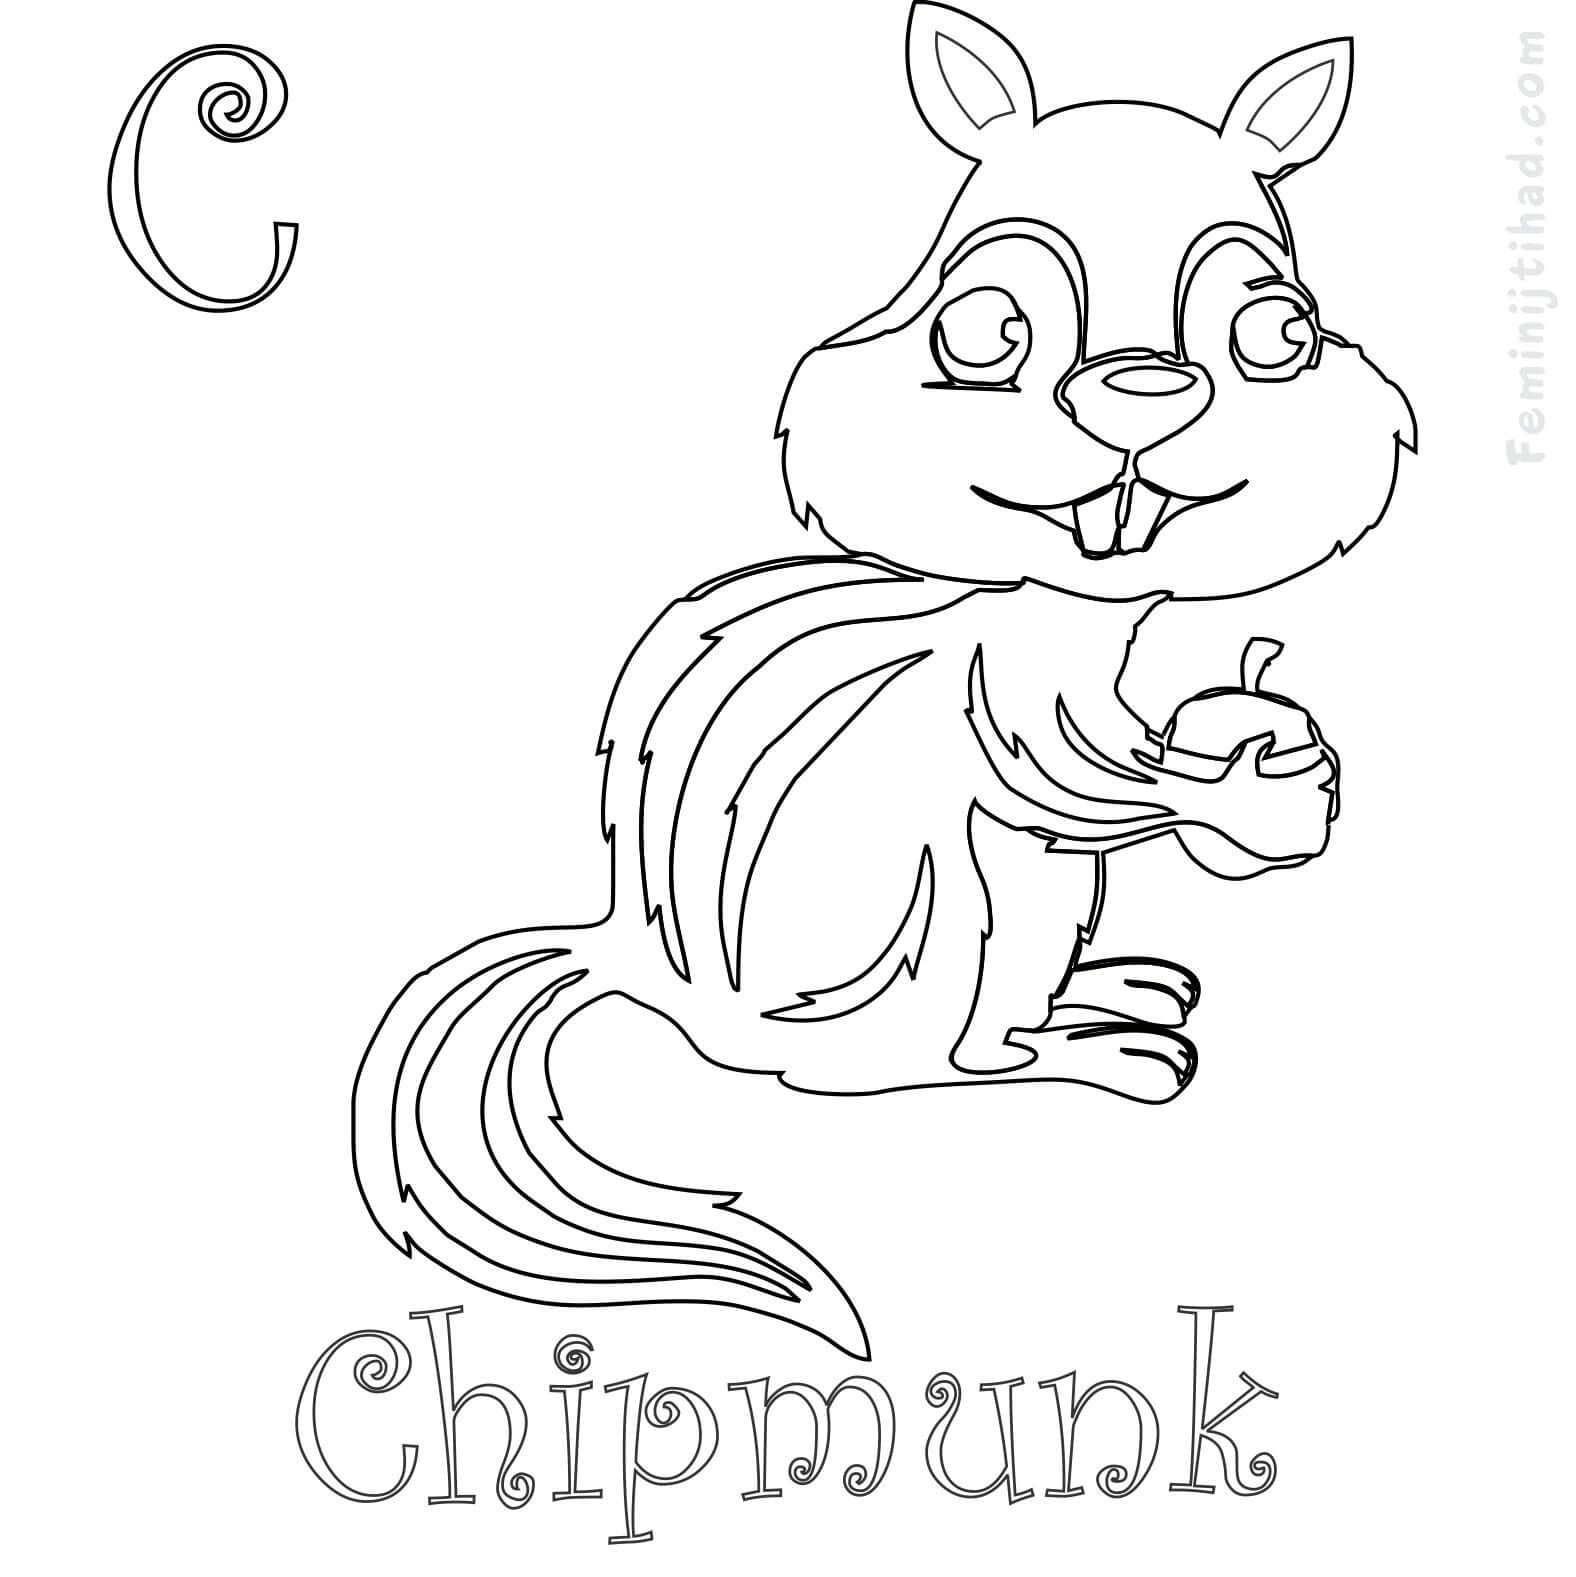 Cute Chipmunk Coloring Pages Collection In 2020 Animal Coloring Pages Coloring Pages Chipmunks